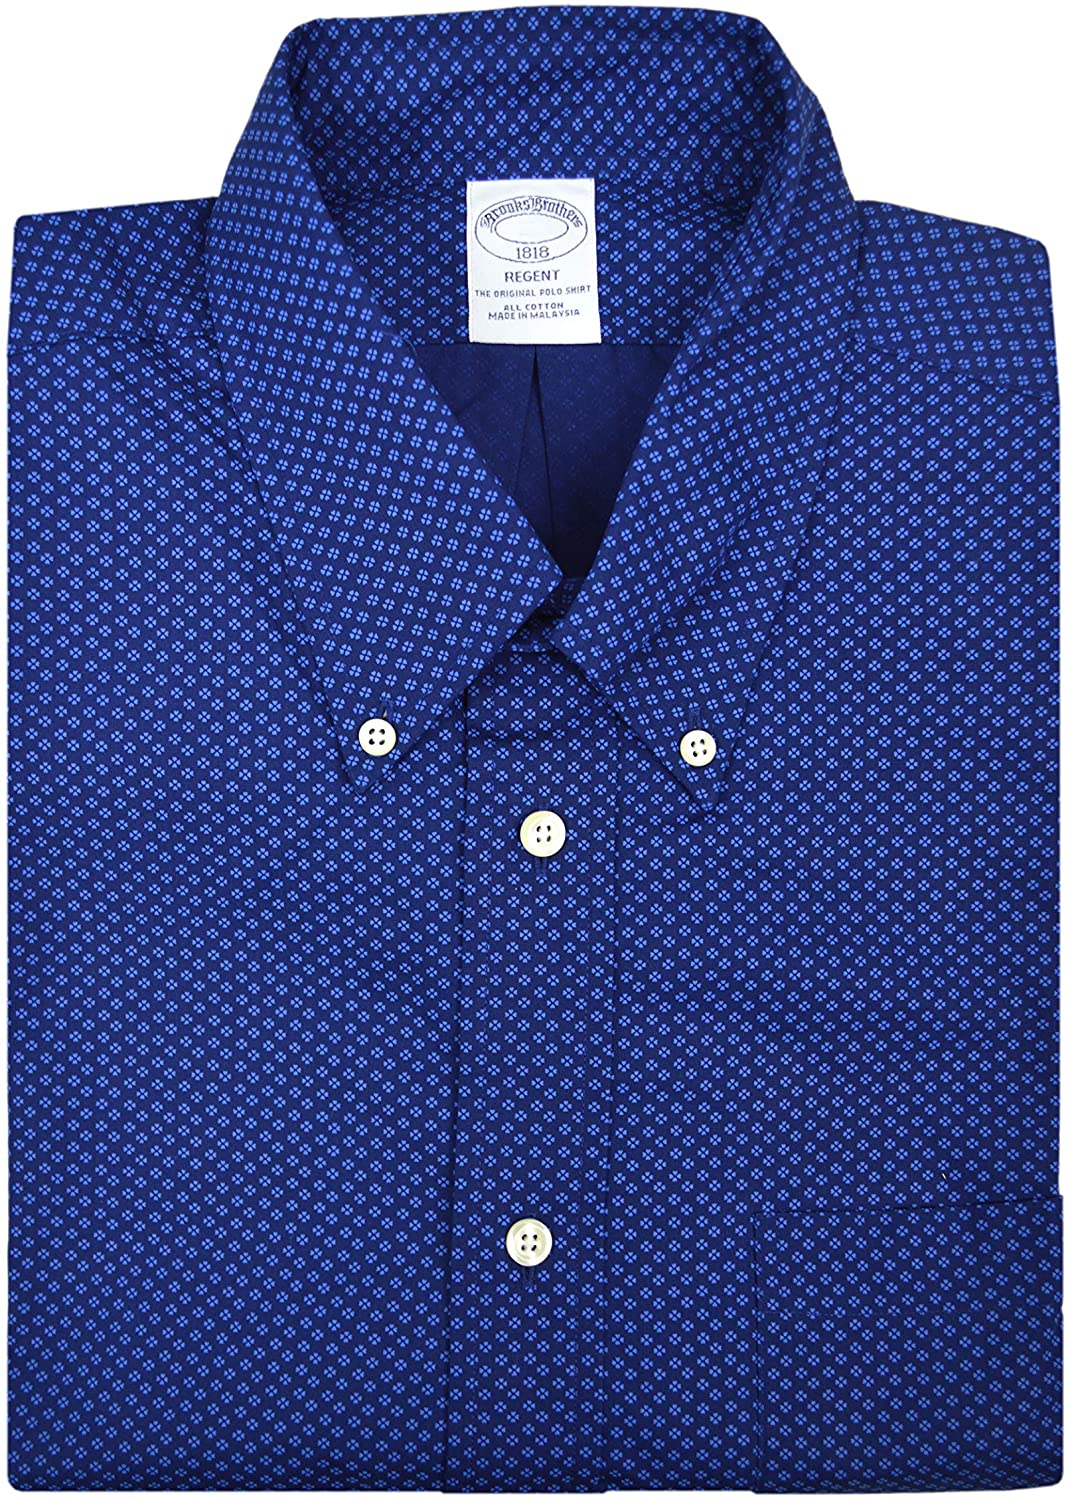 Brooks Brothers Mens 47811 Regent Fit All Cotton The Original Polo Button Down Shirt Navy Blue Clover Print